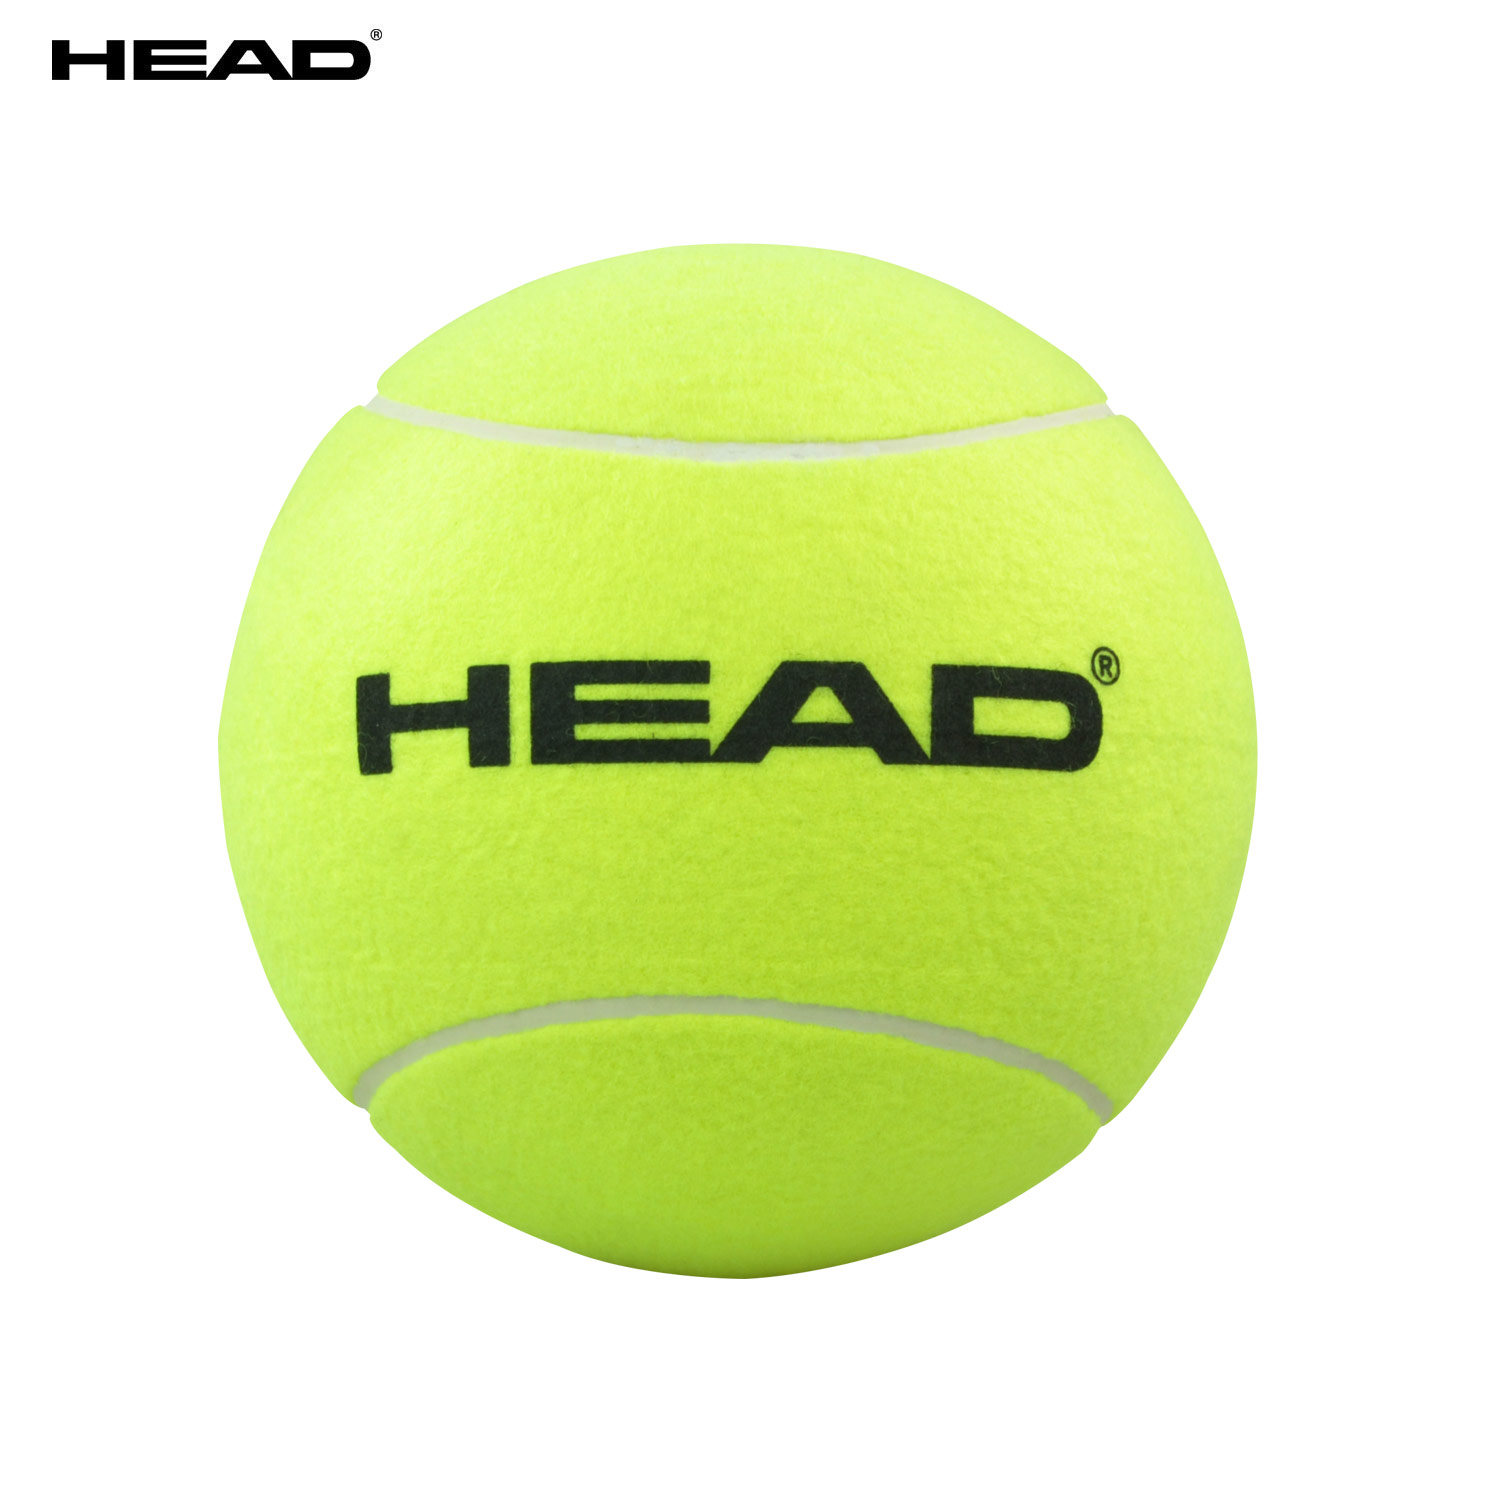 [Head/hyde authentic] 2014 china open tennis tournament tennis memorial tennis